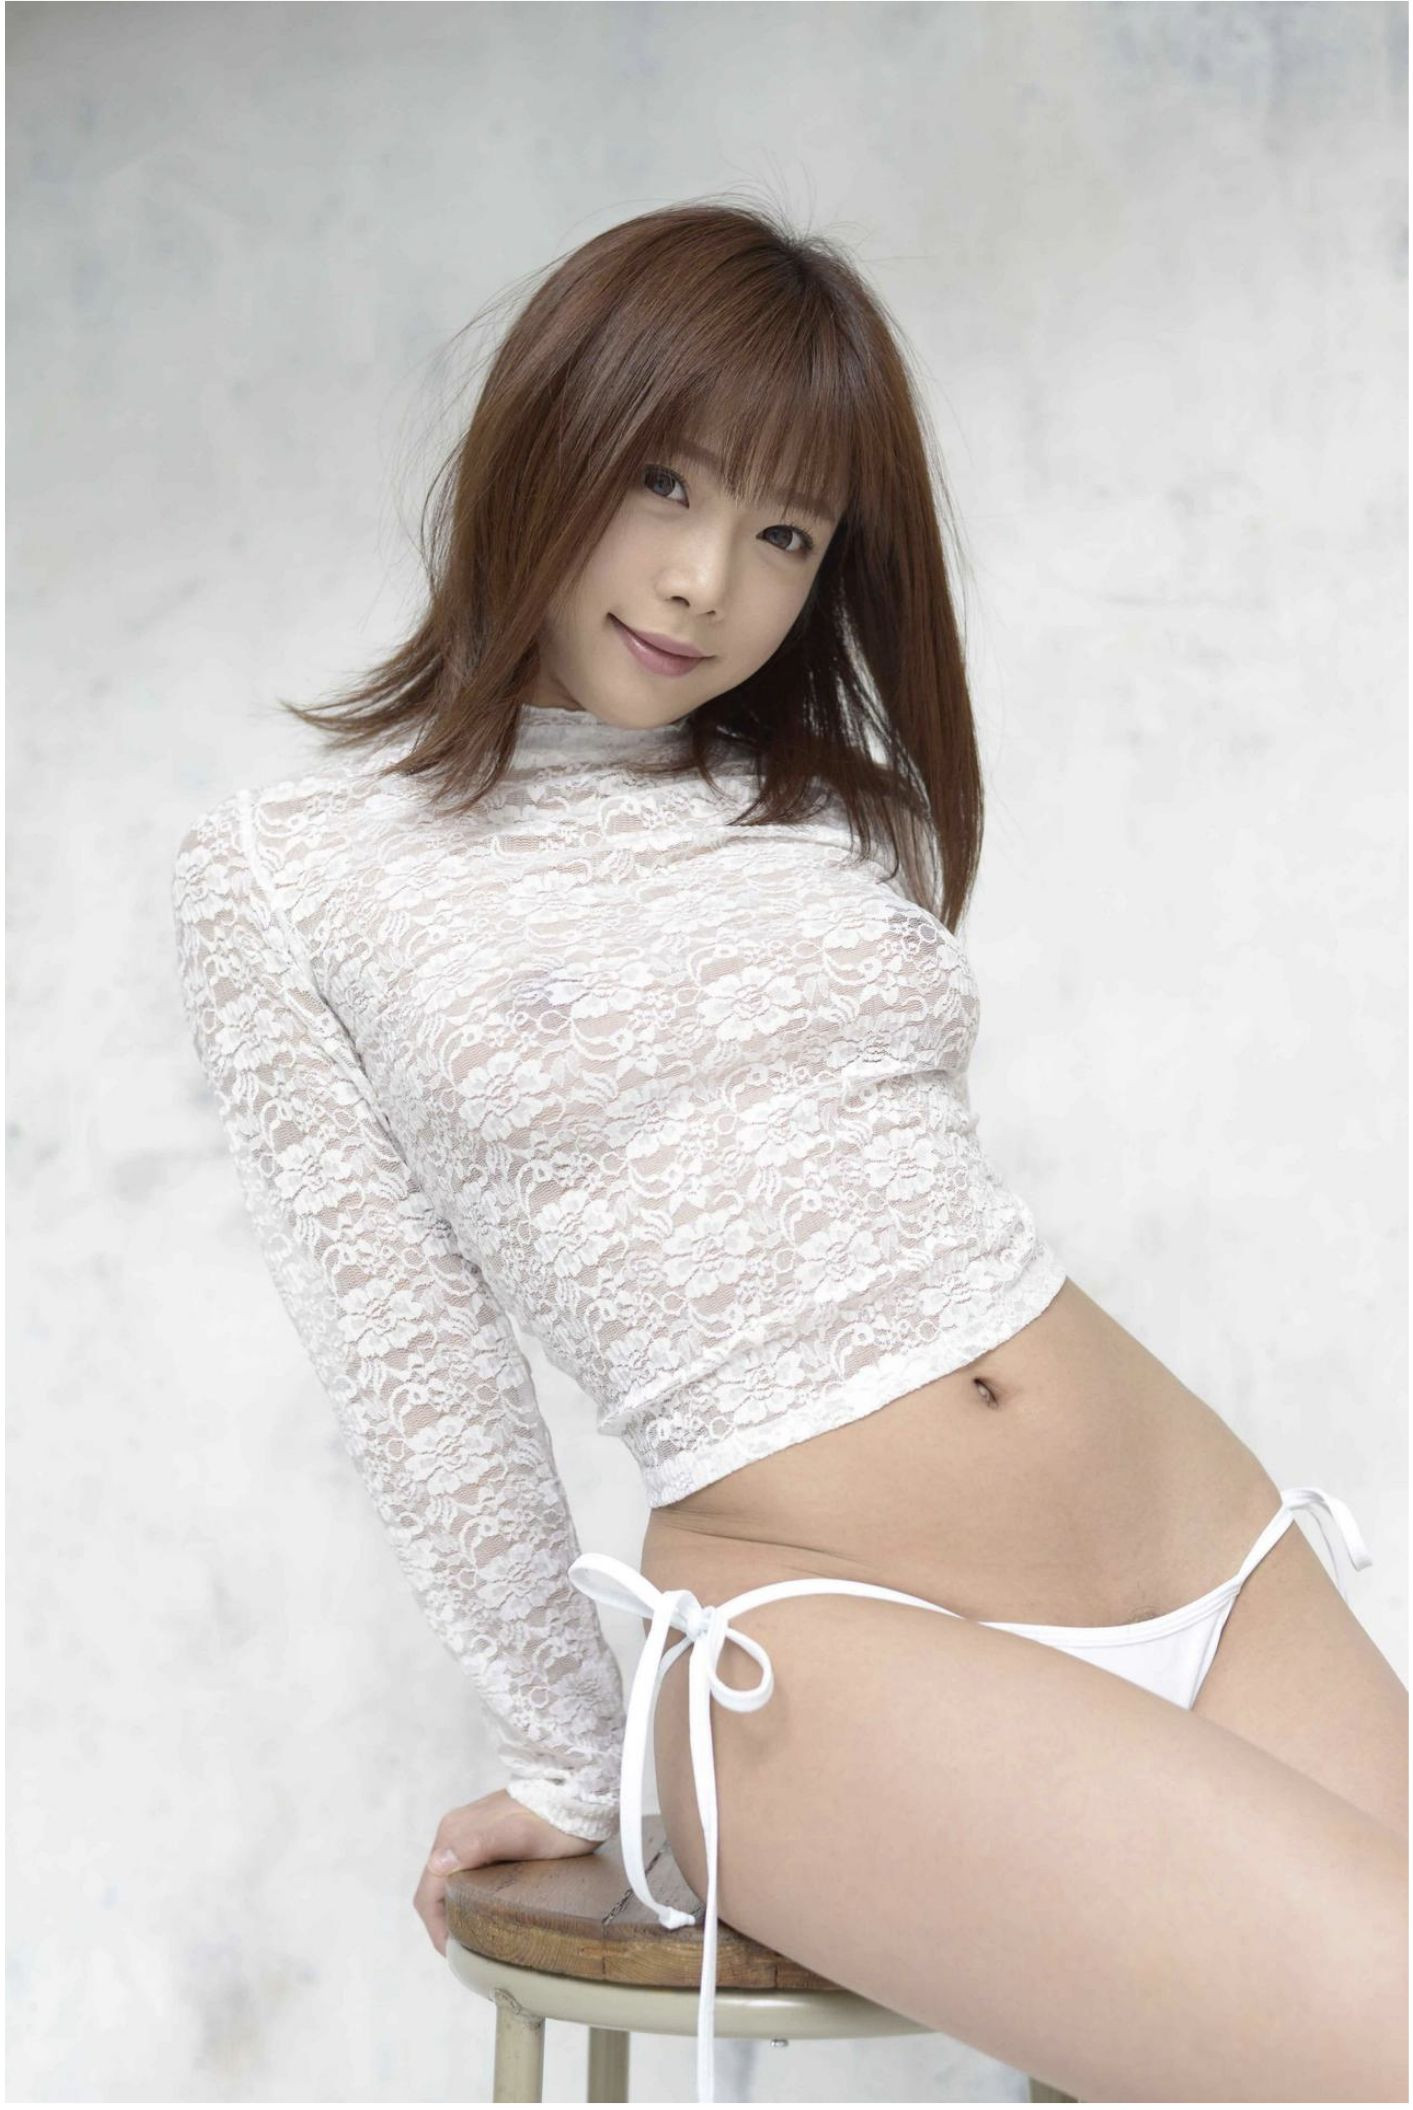 SOFT ON DEMAND GRAVURE COLLECTION 紗倉まな04 photo 051